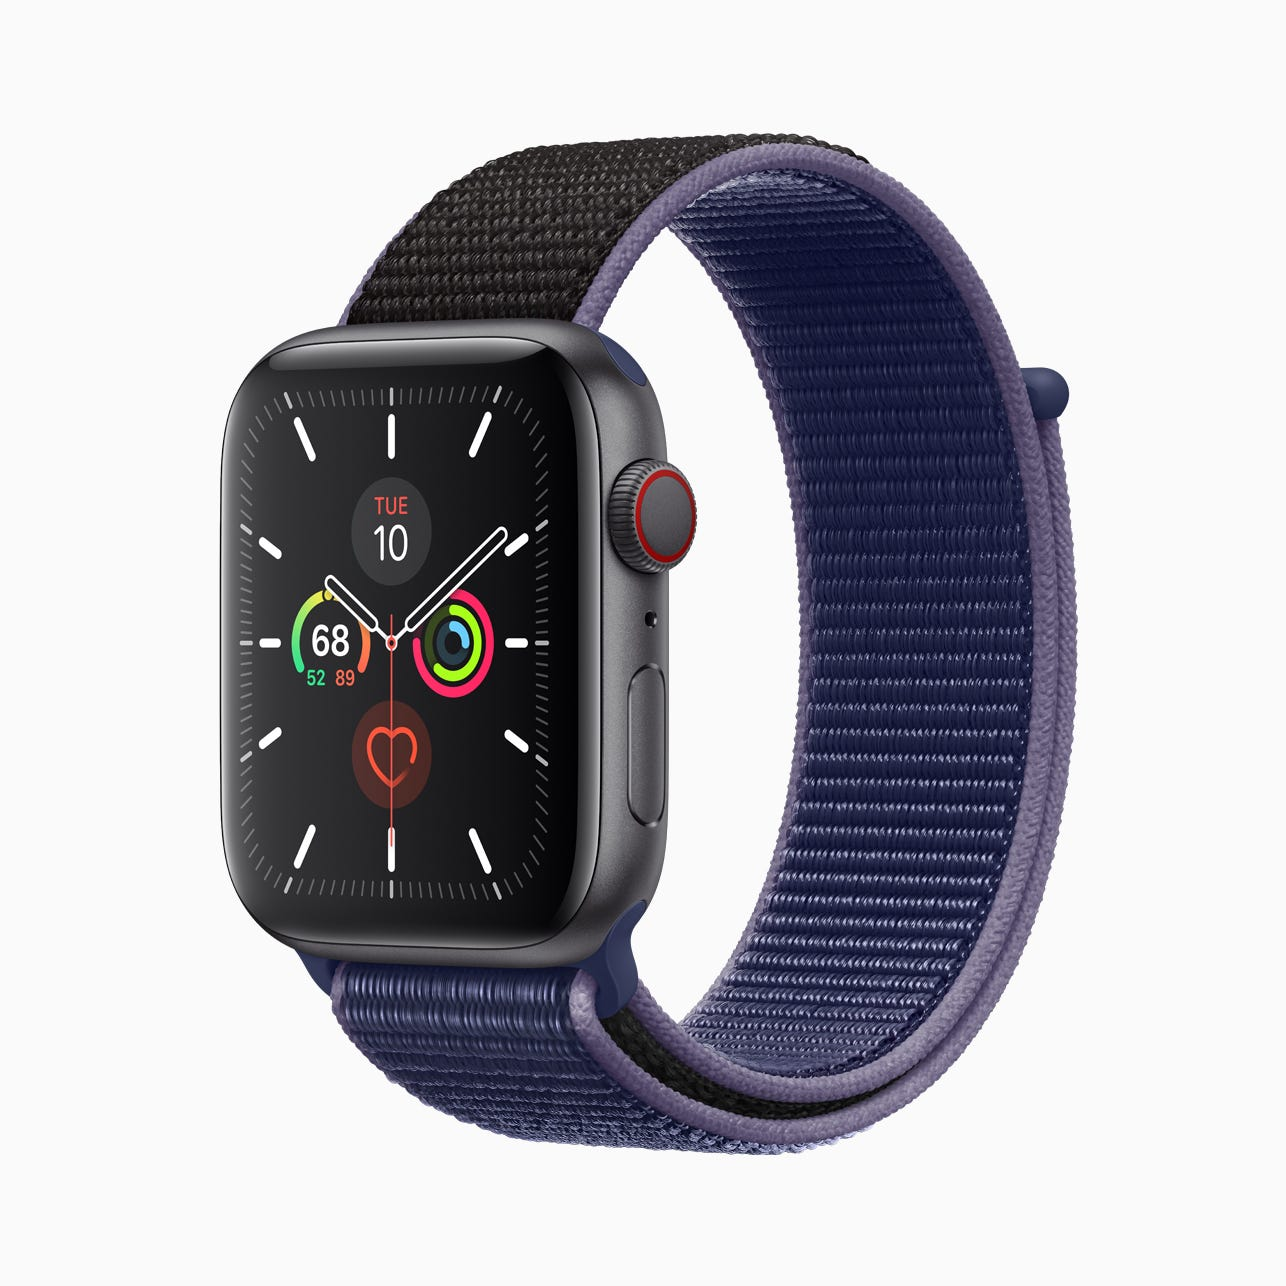 Apple Watch Series 5 review: Always-on display, suspect battery